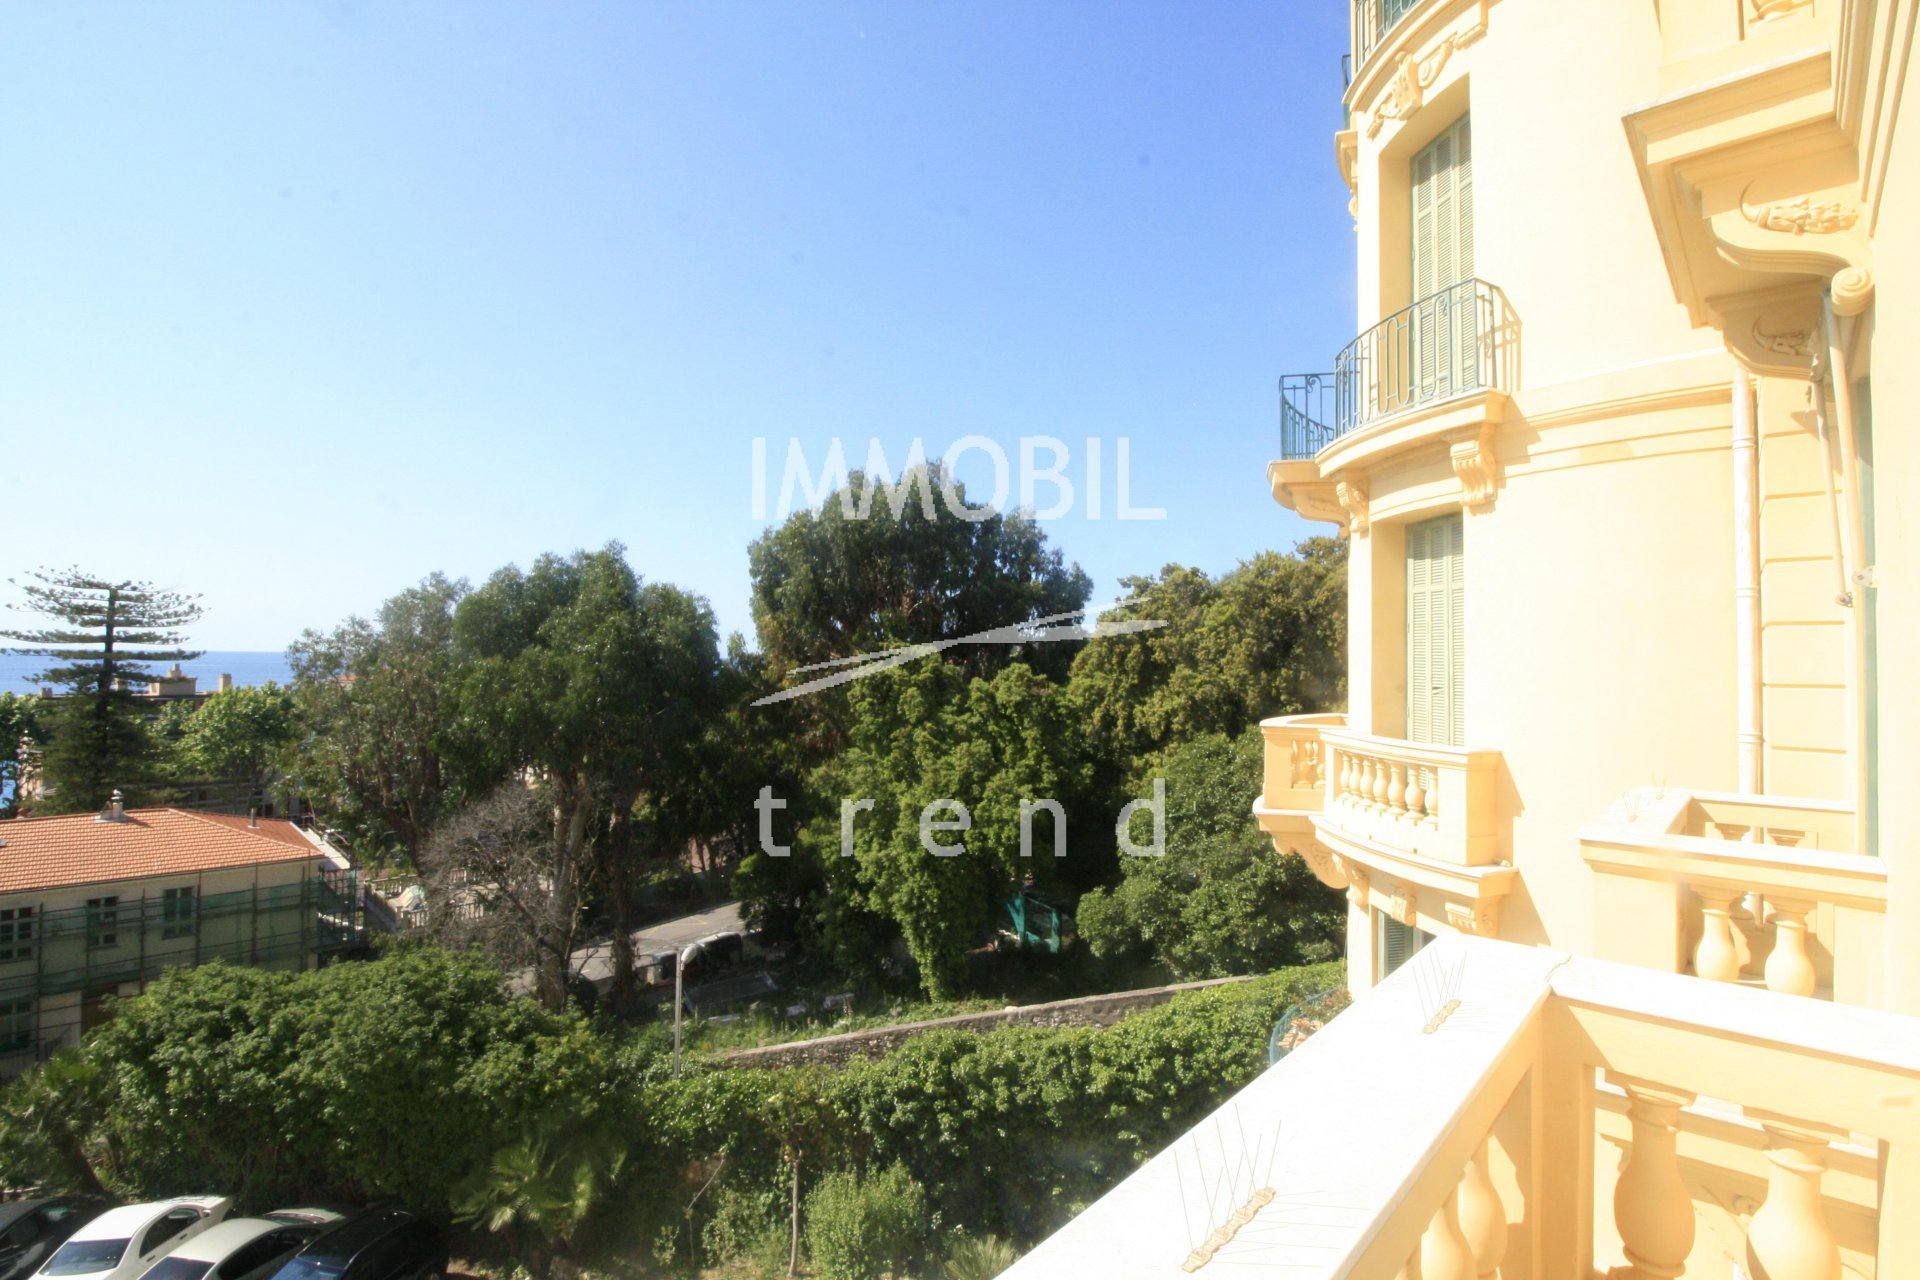 Menton - Large 2 Bedroom Bourgeois With Two Balconies With Sea View For Sale